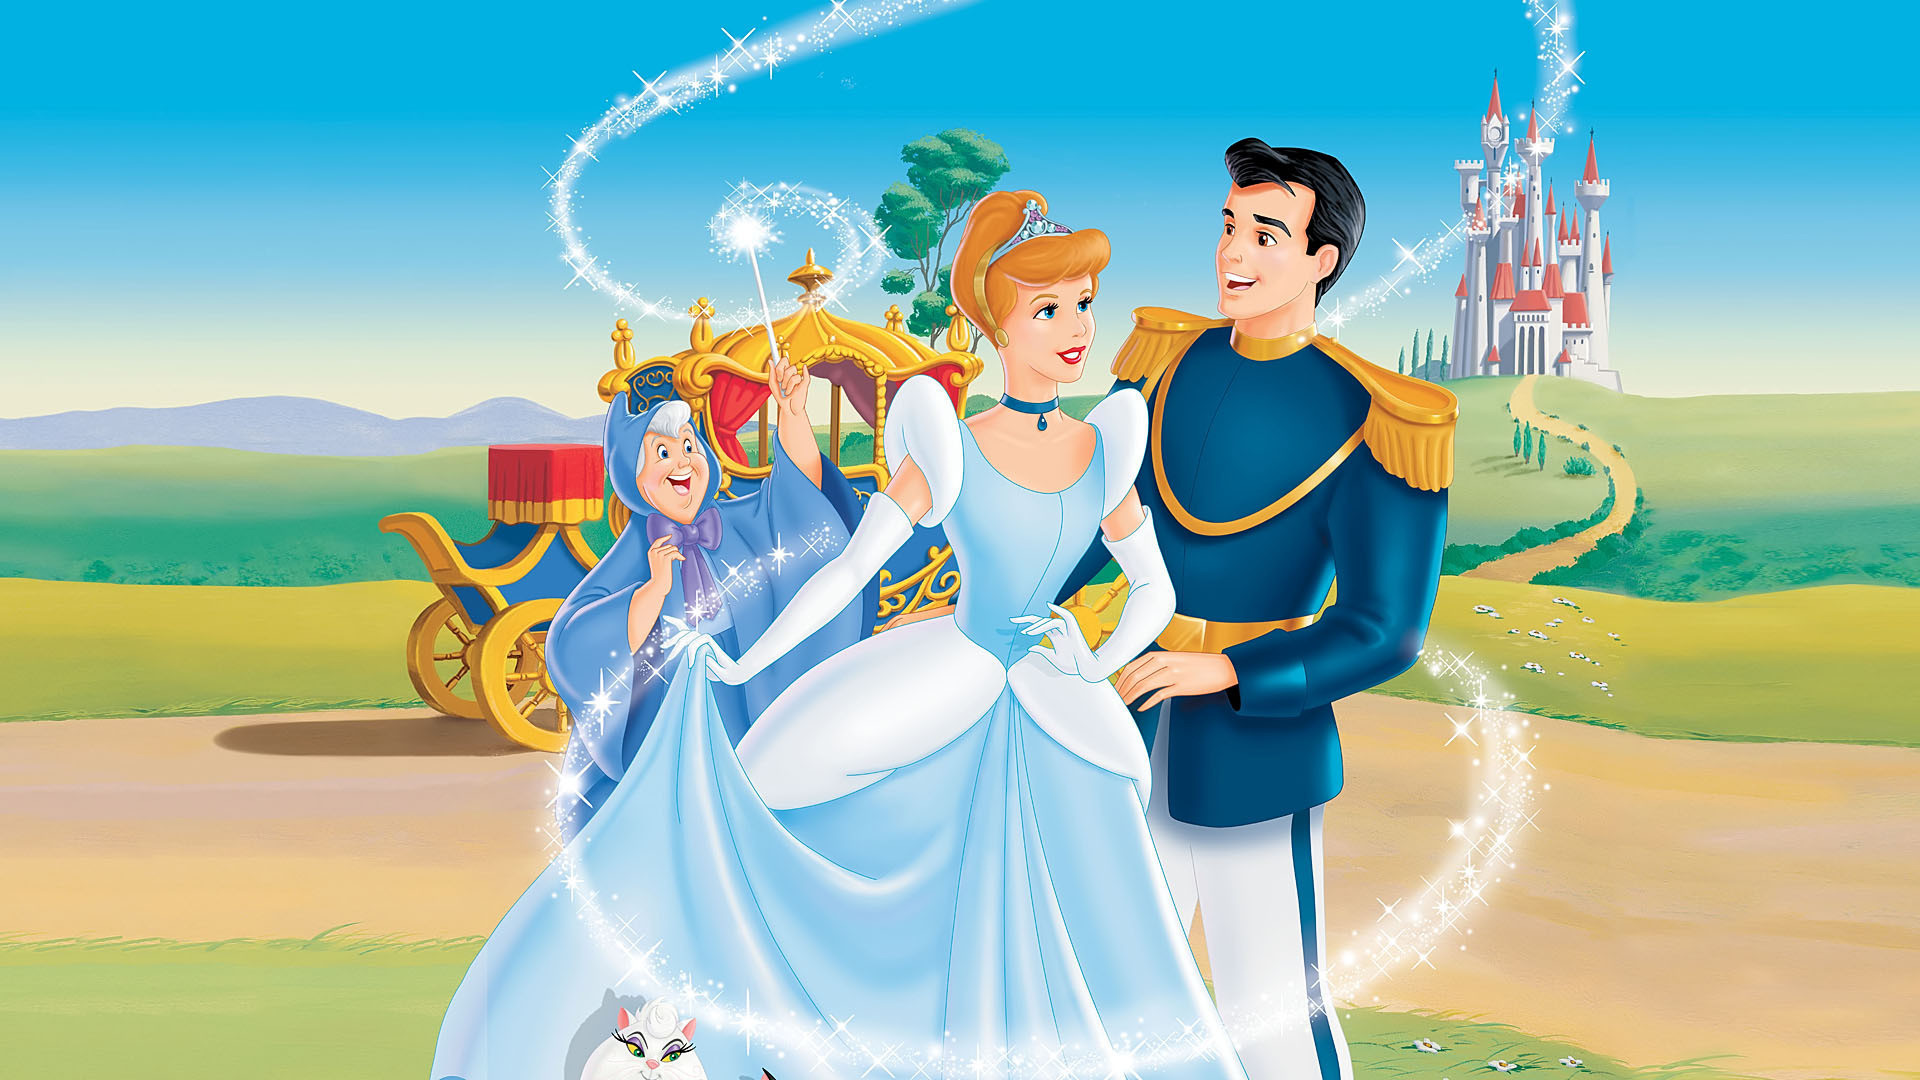 cindrella A list of the best cinderella movies, ranked best to worst these types of movies focus on the famous rags to riches cinderella story: a diamond in the rough is ultimately discovered and put in her proper.